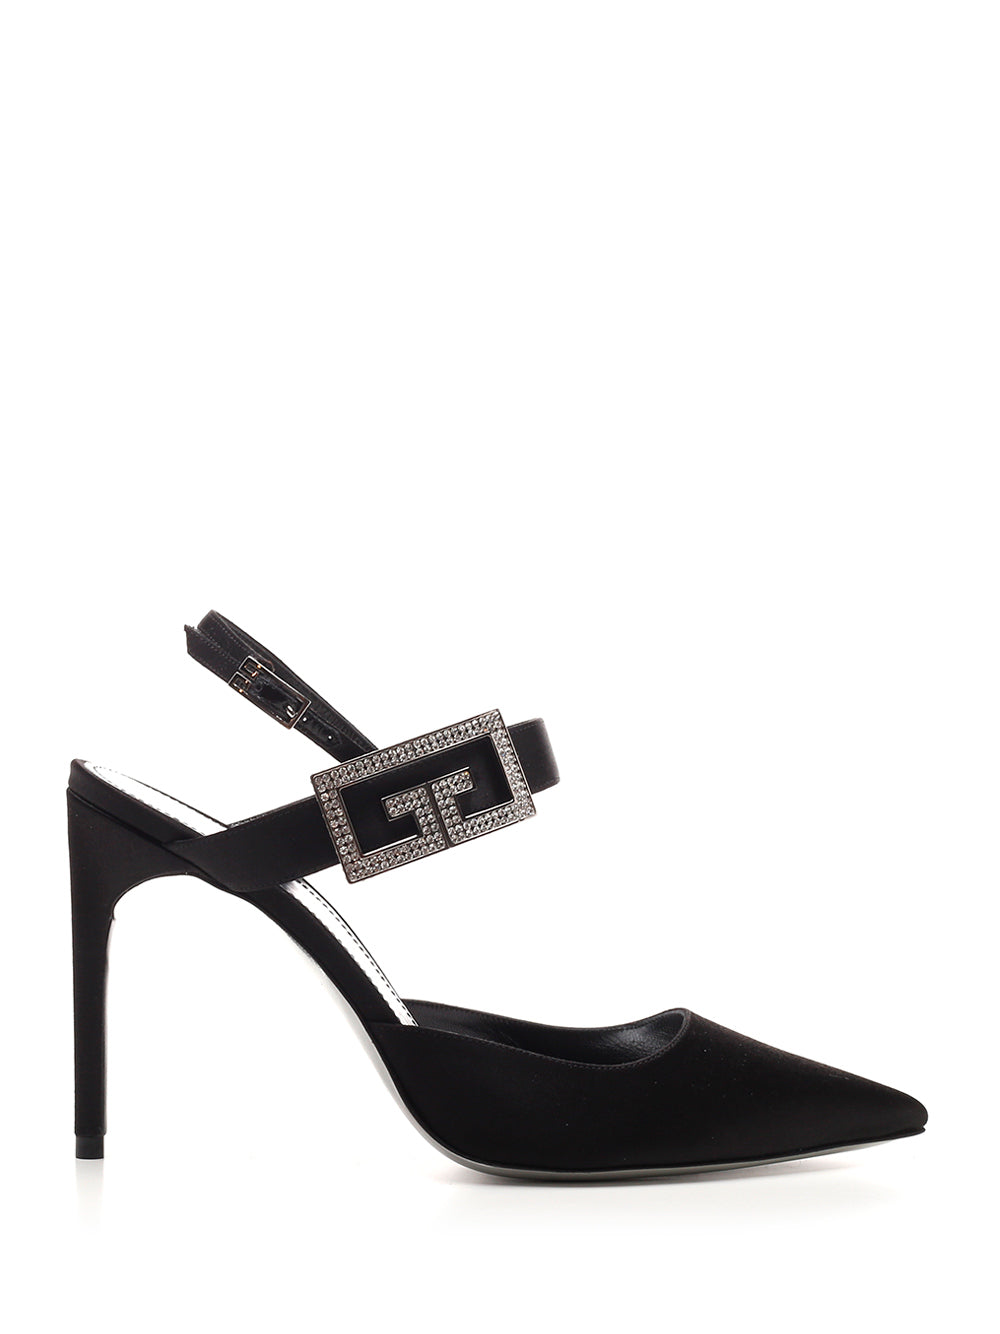 GIVENCHY GIVENCHY DOUBLE G BUCKLE PUMPS